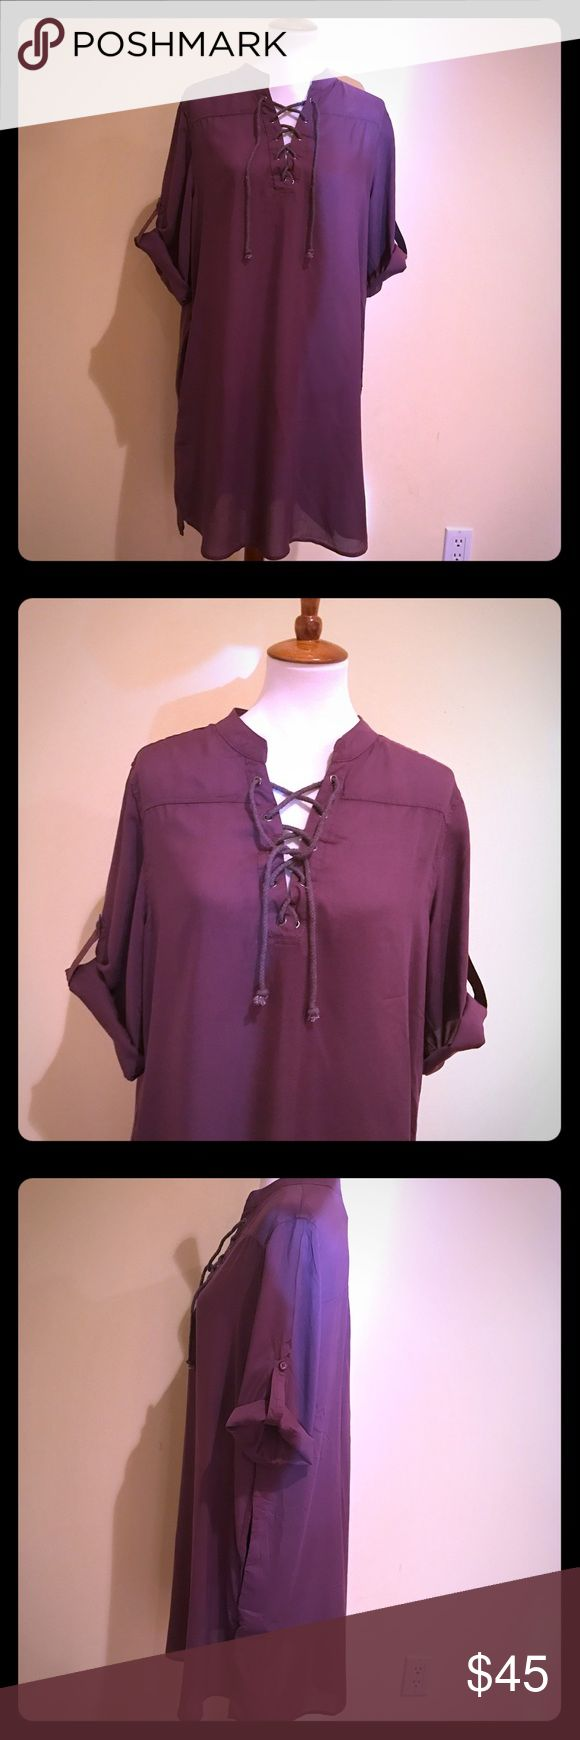 Purple Shirt Dress rolled sleeves laced Neckline Pretty purple shirt dress with shoe lace Neckline and rolled sleeves. Fits to size Dresses Mini